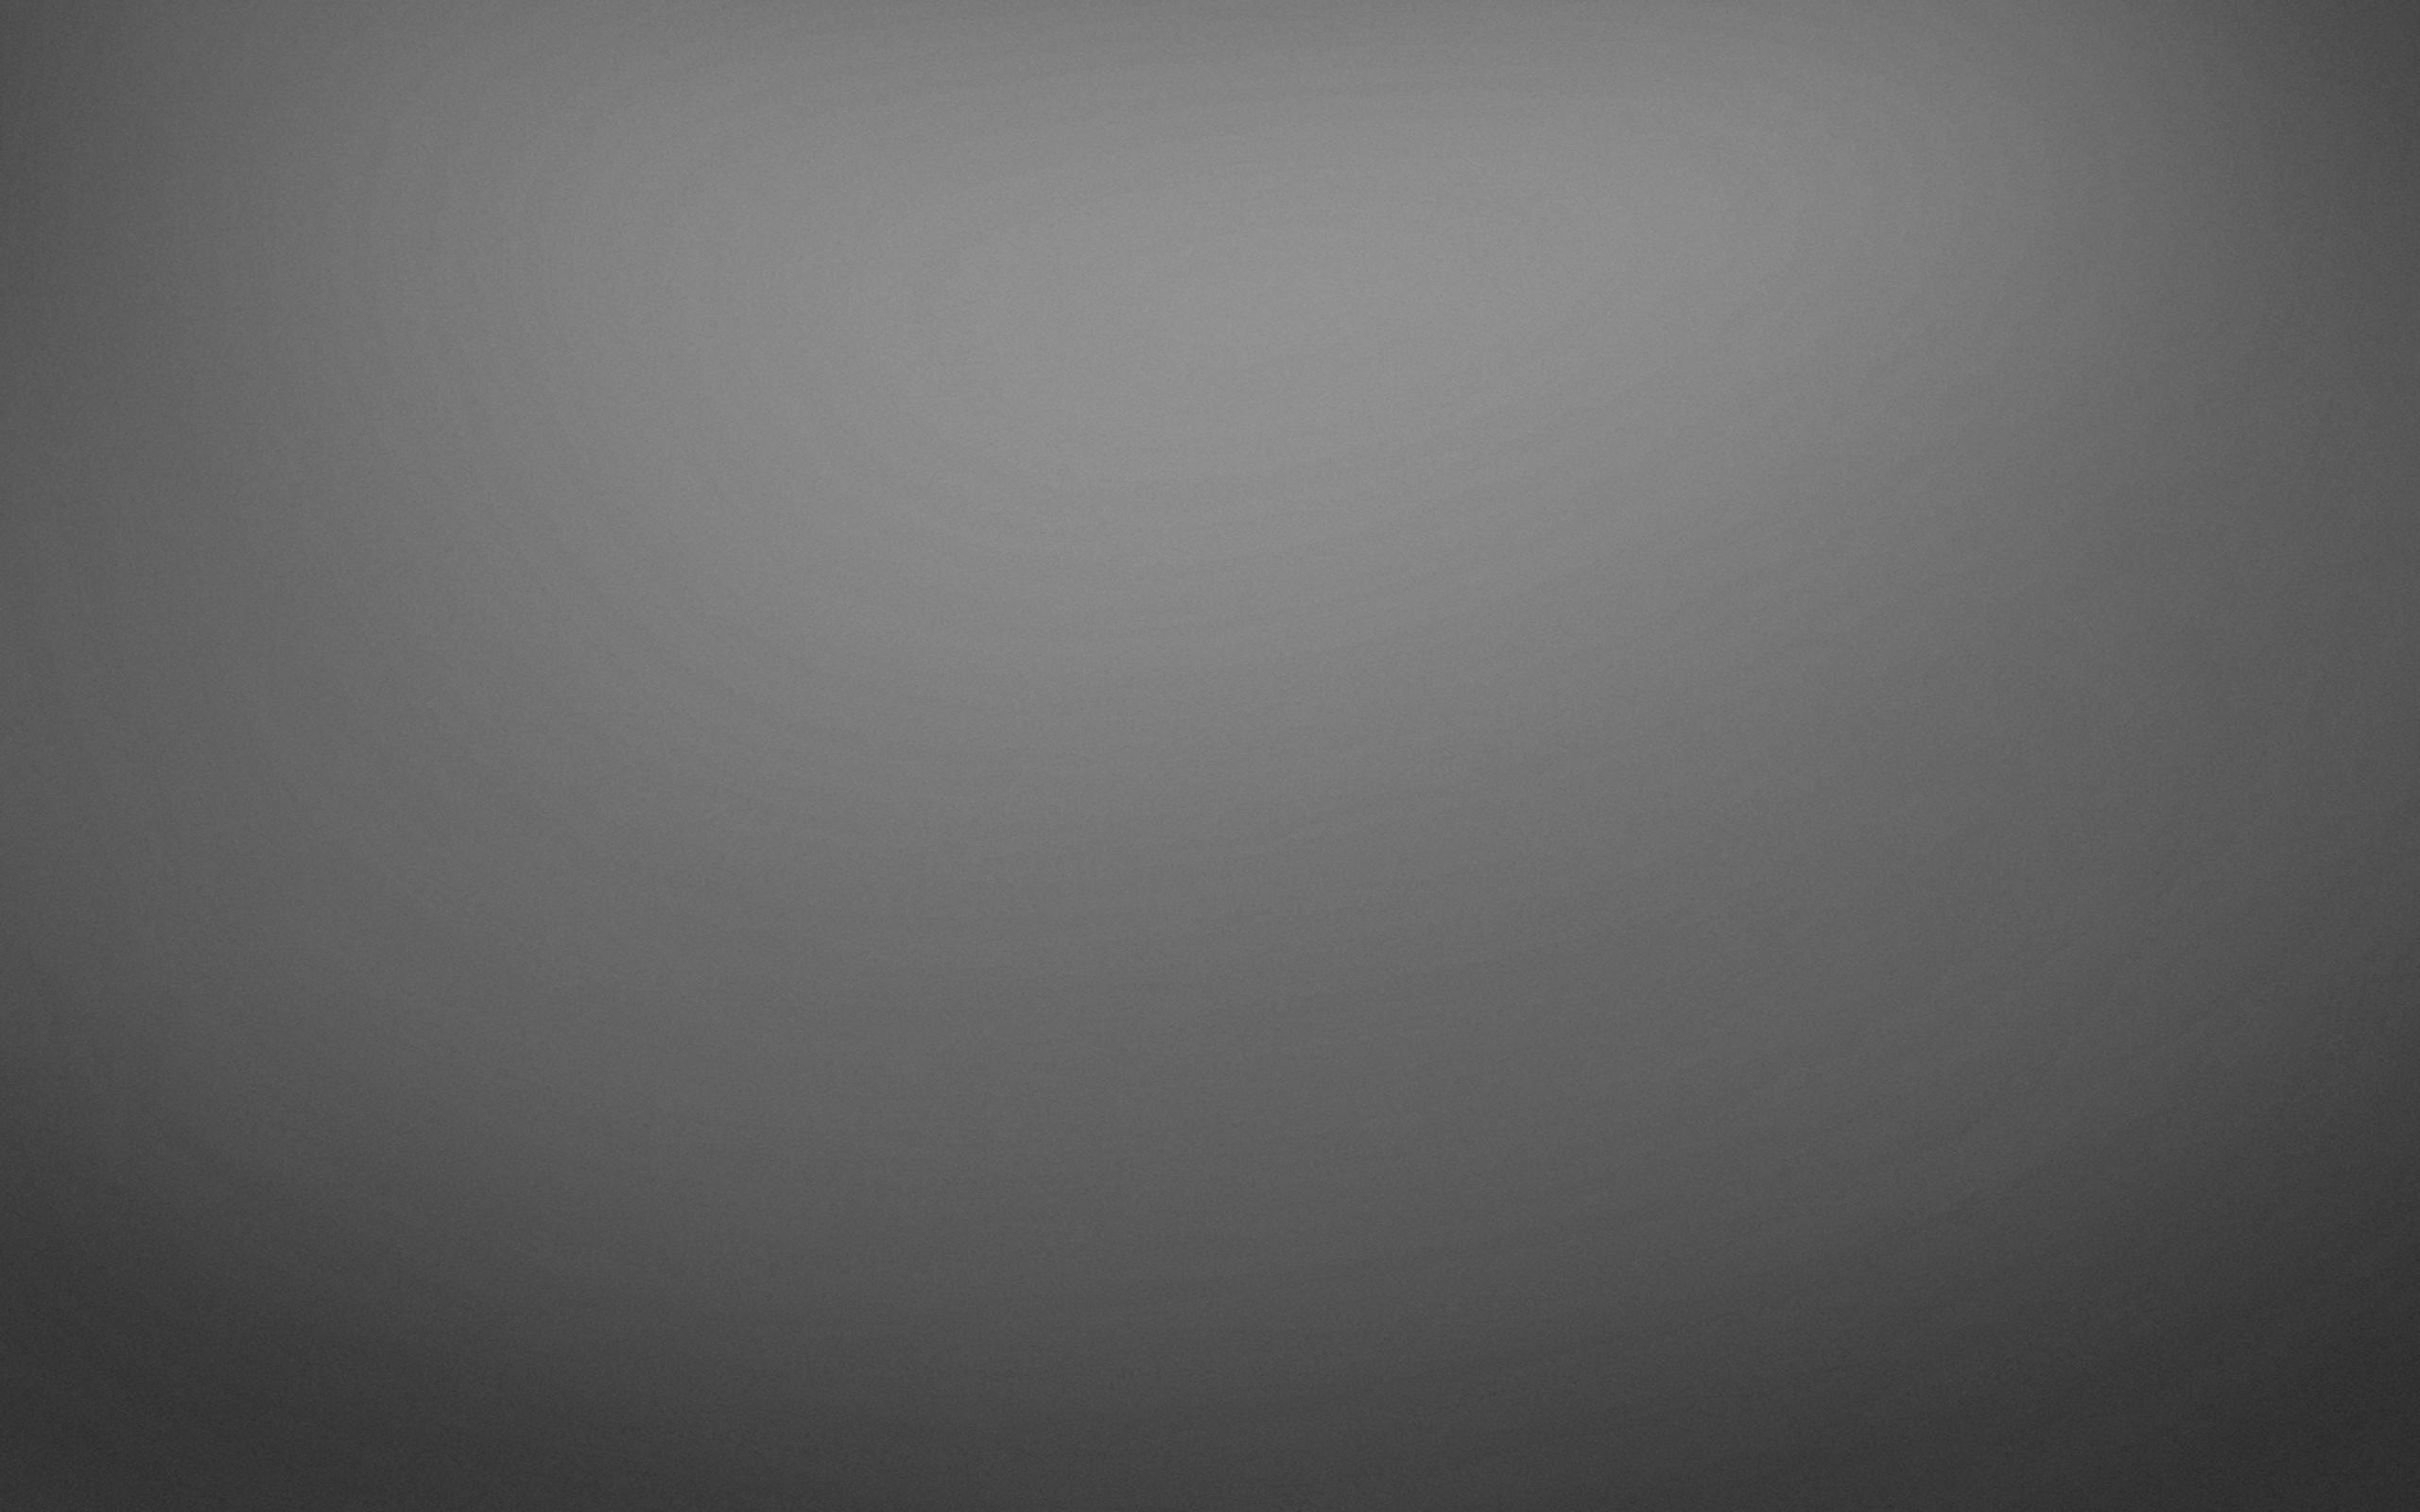 Hd solid color wallpaper 81 images - Solid light gray wallpaper ...